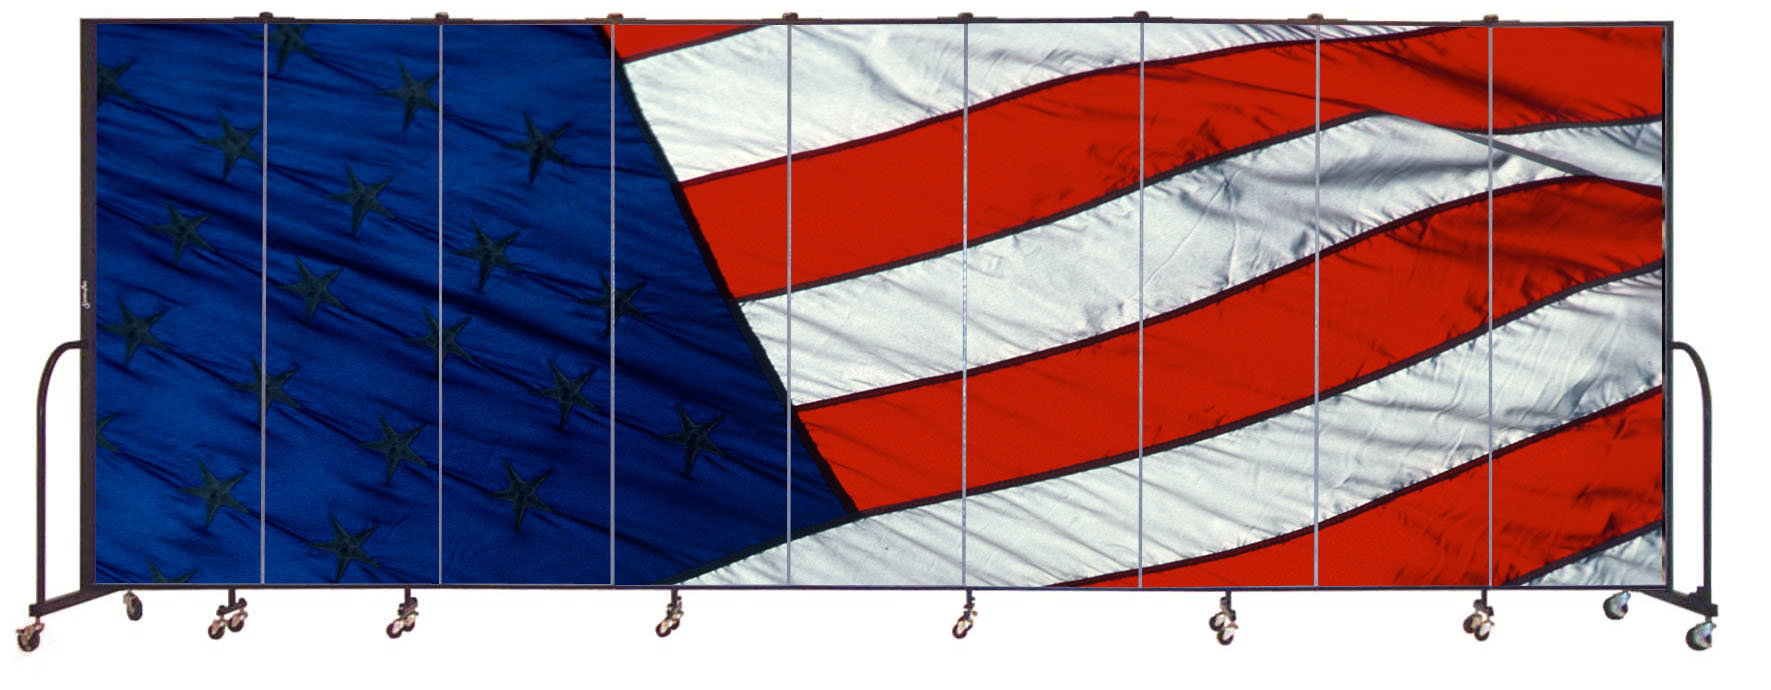 American flag mural on a Screenflex portable room divider